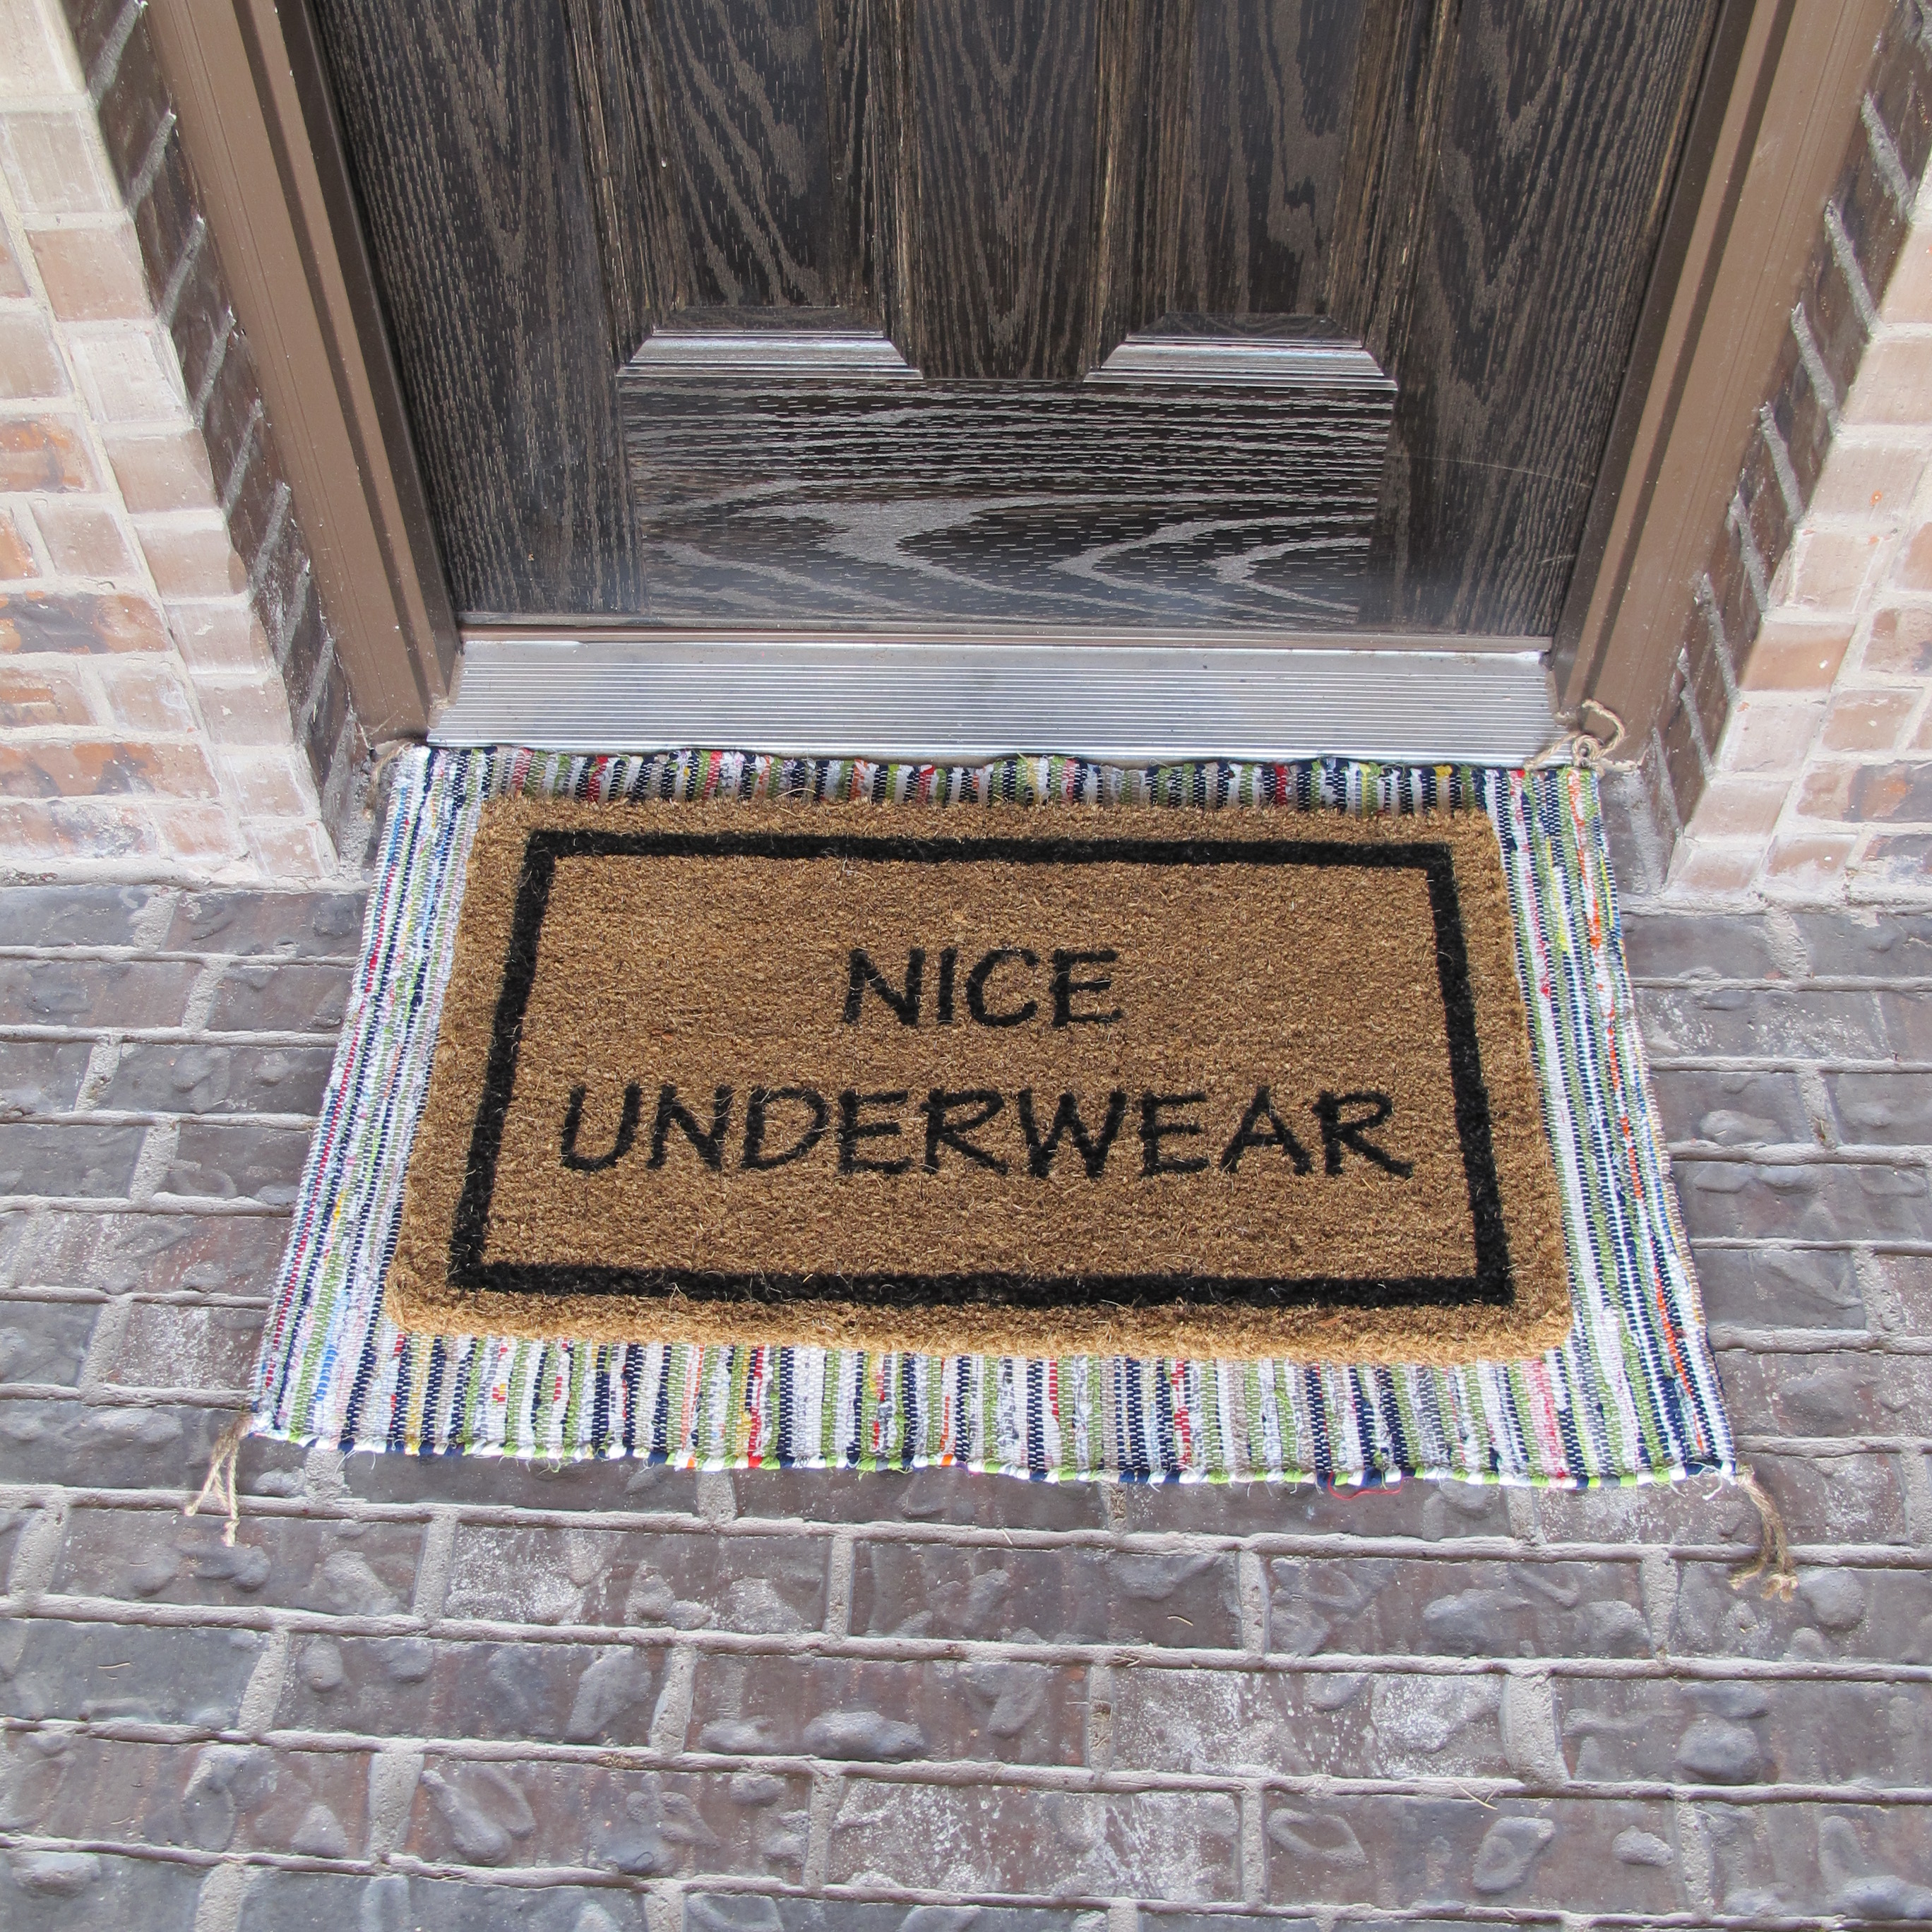 funny mats pin a oh doormat door shit smile not puts on my face you again